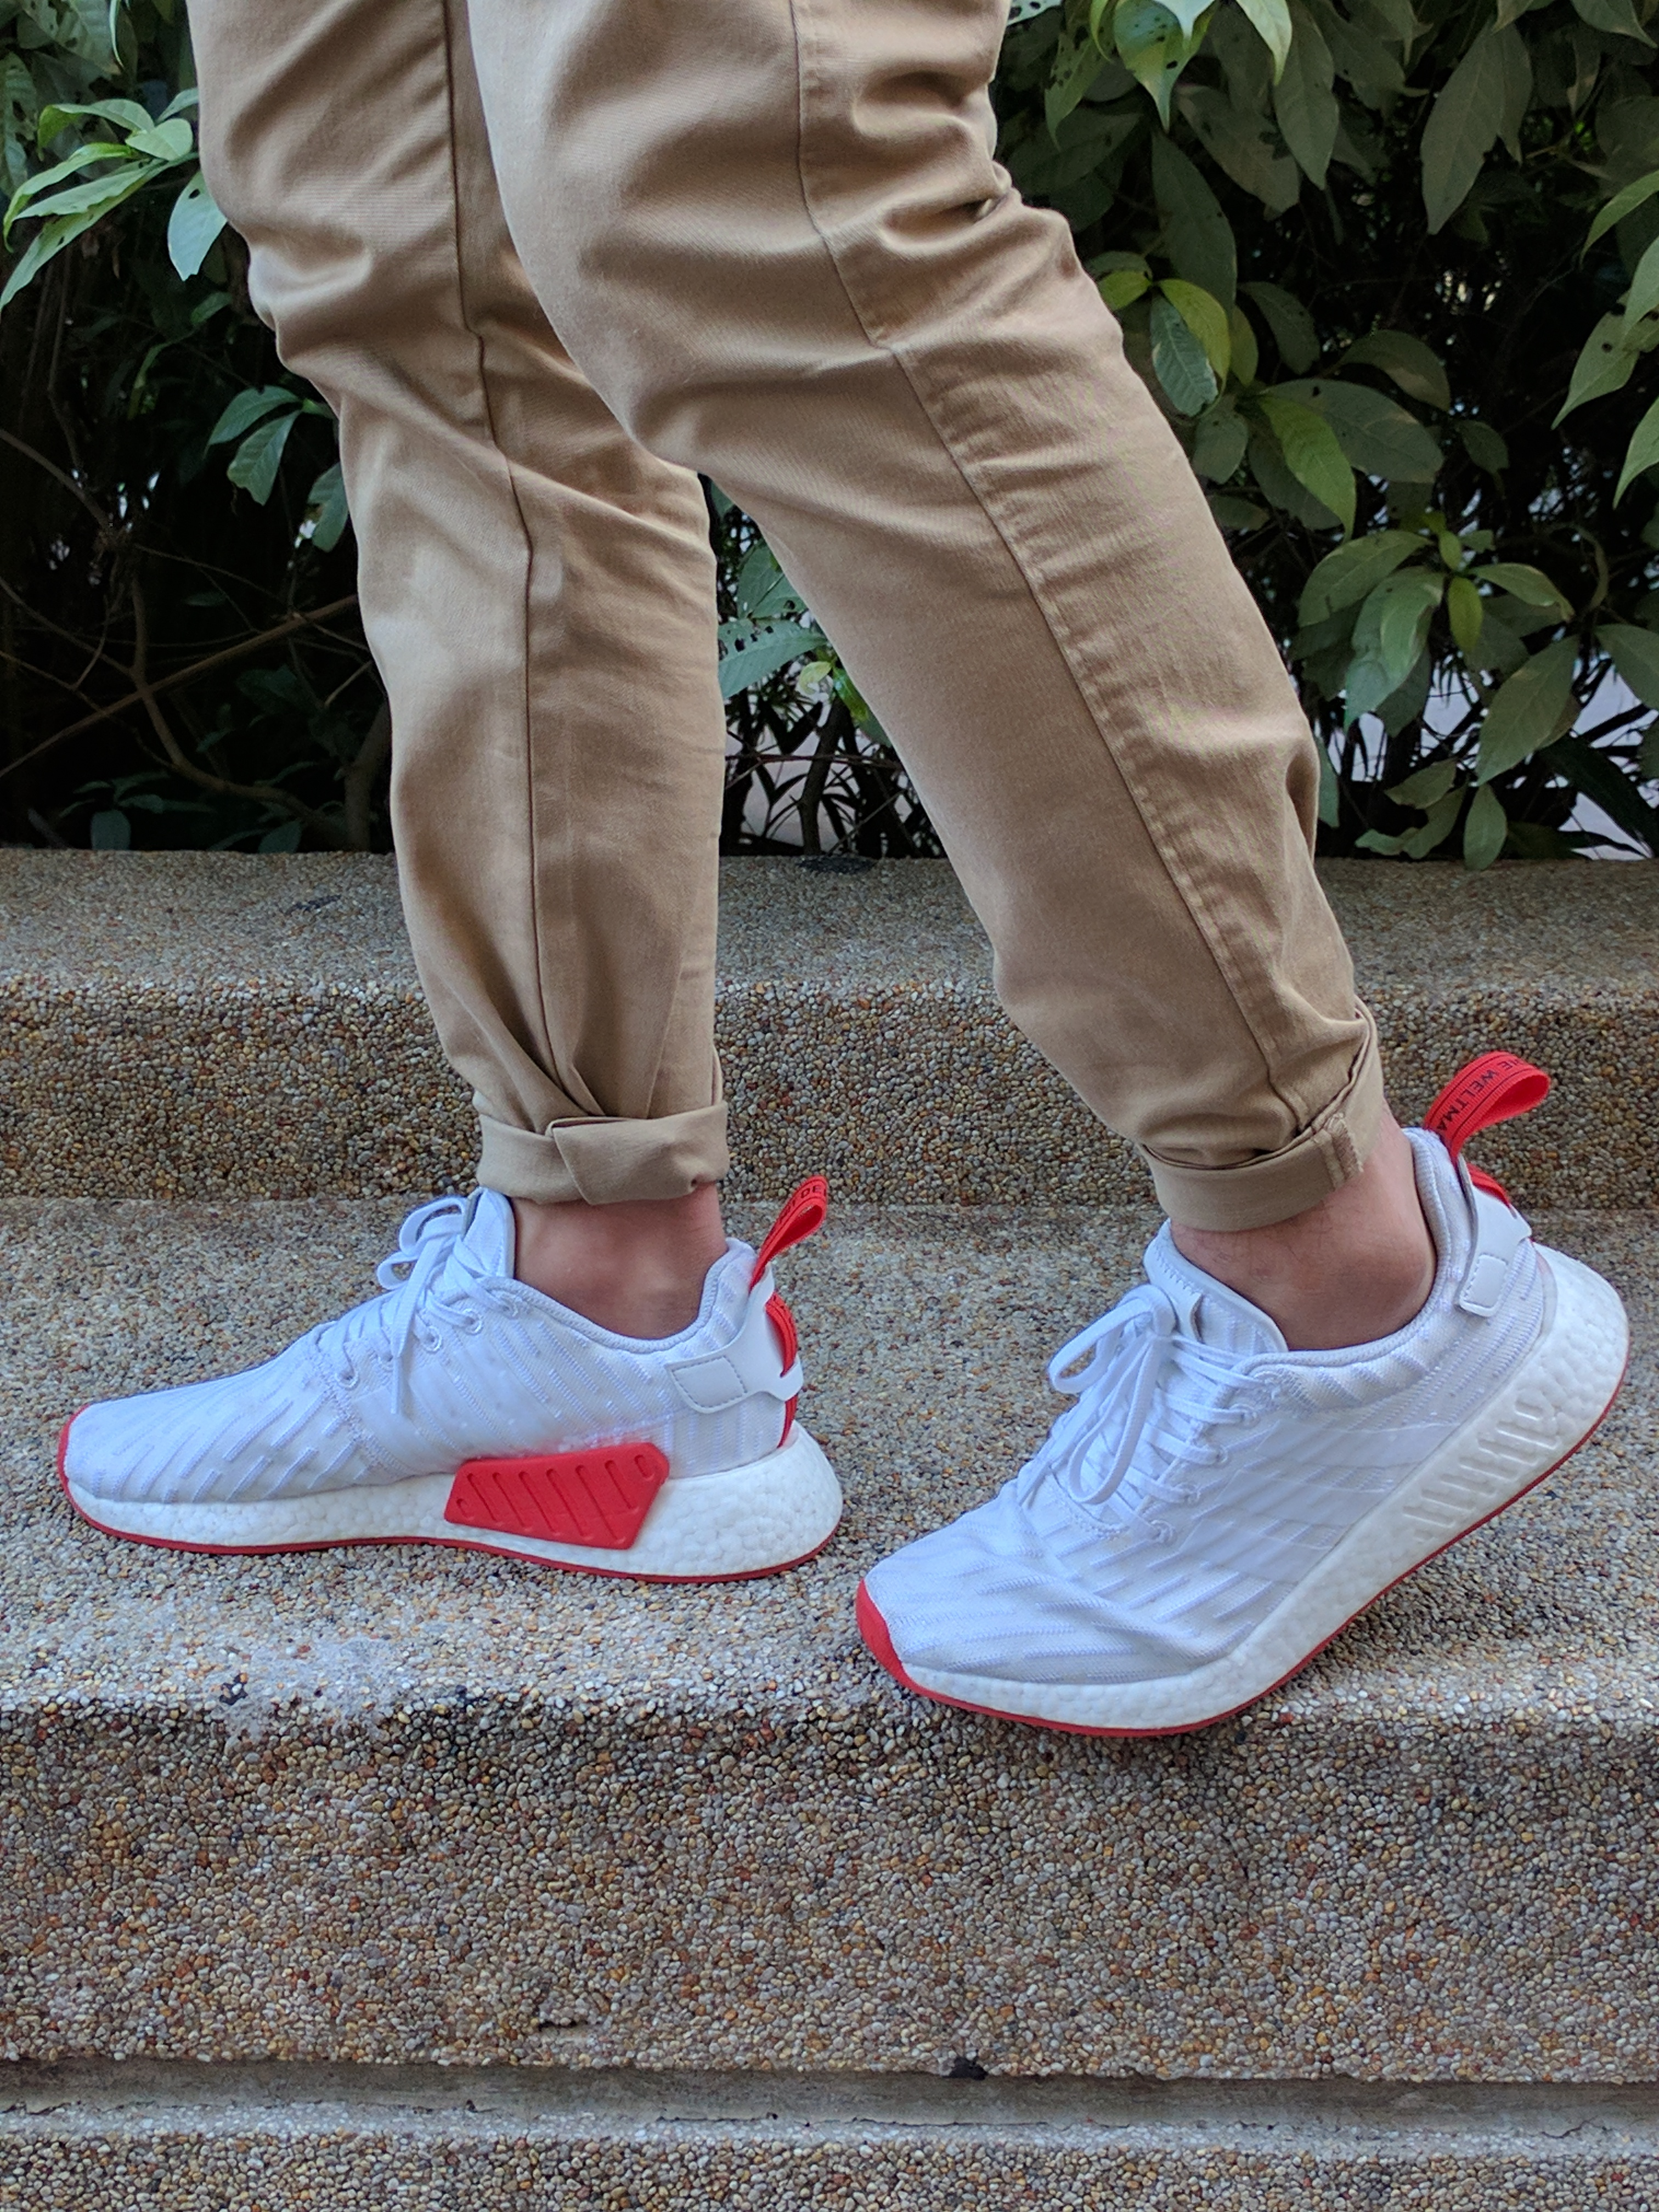 separation shoes cb2ee 9e71d NMD R2 White/Core Red (Two Toned) Review - Second Basement